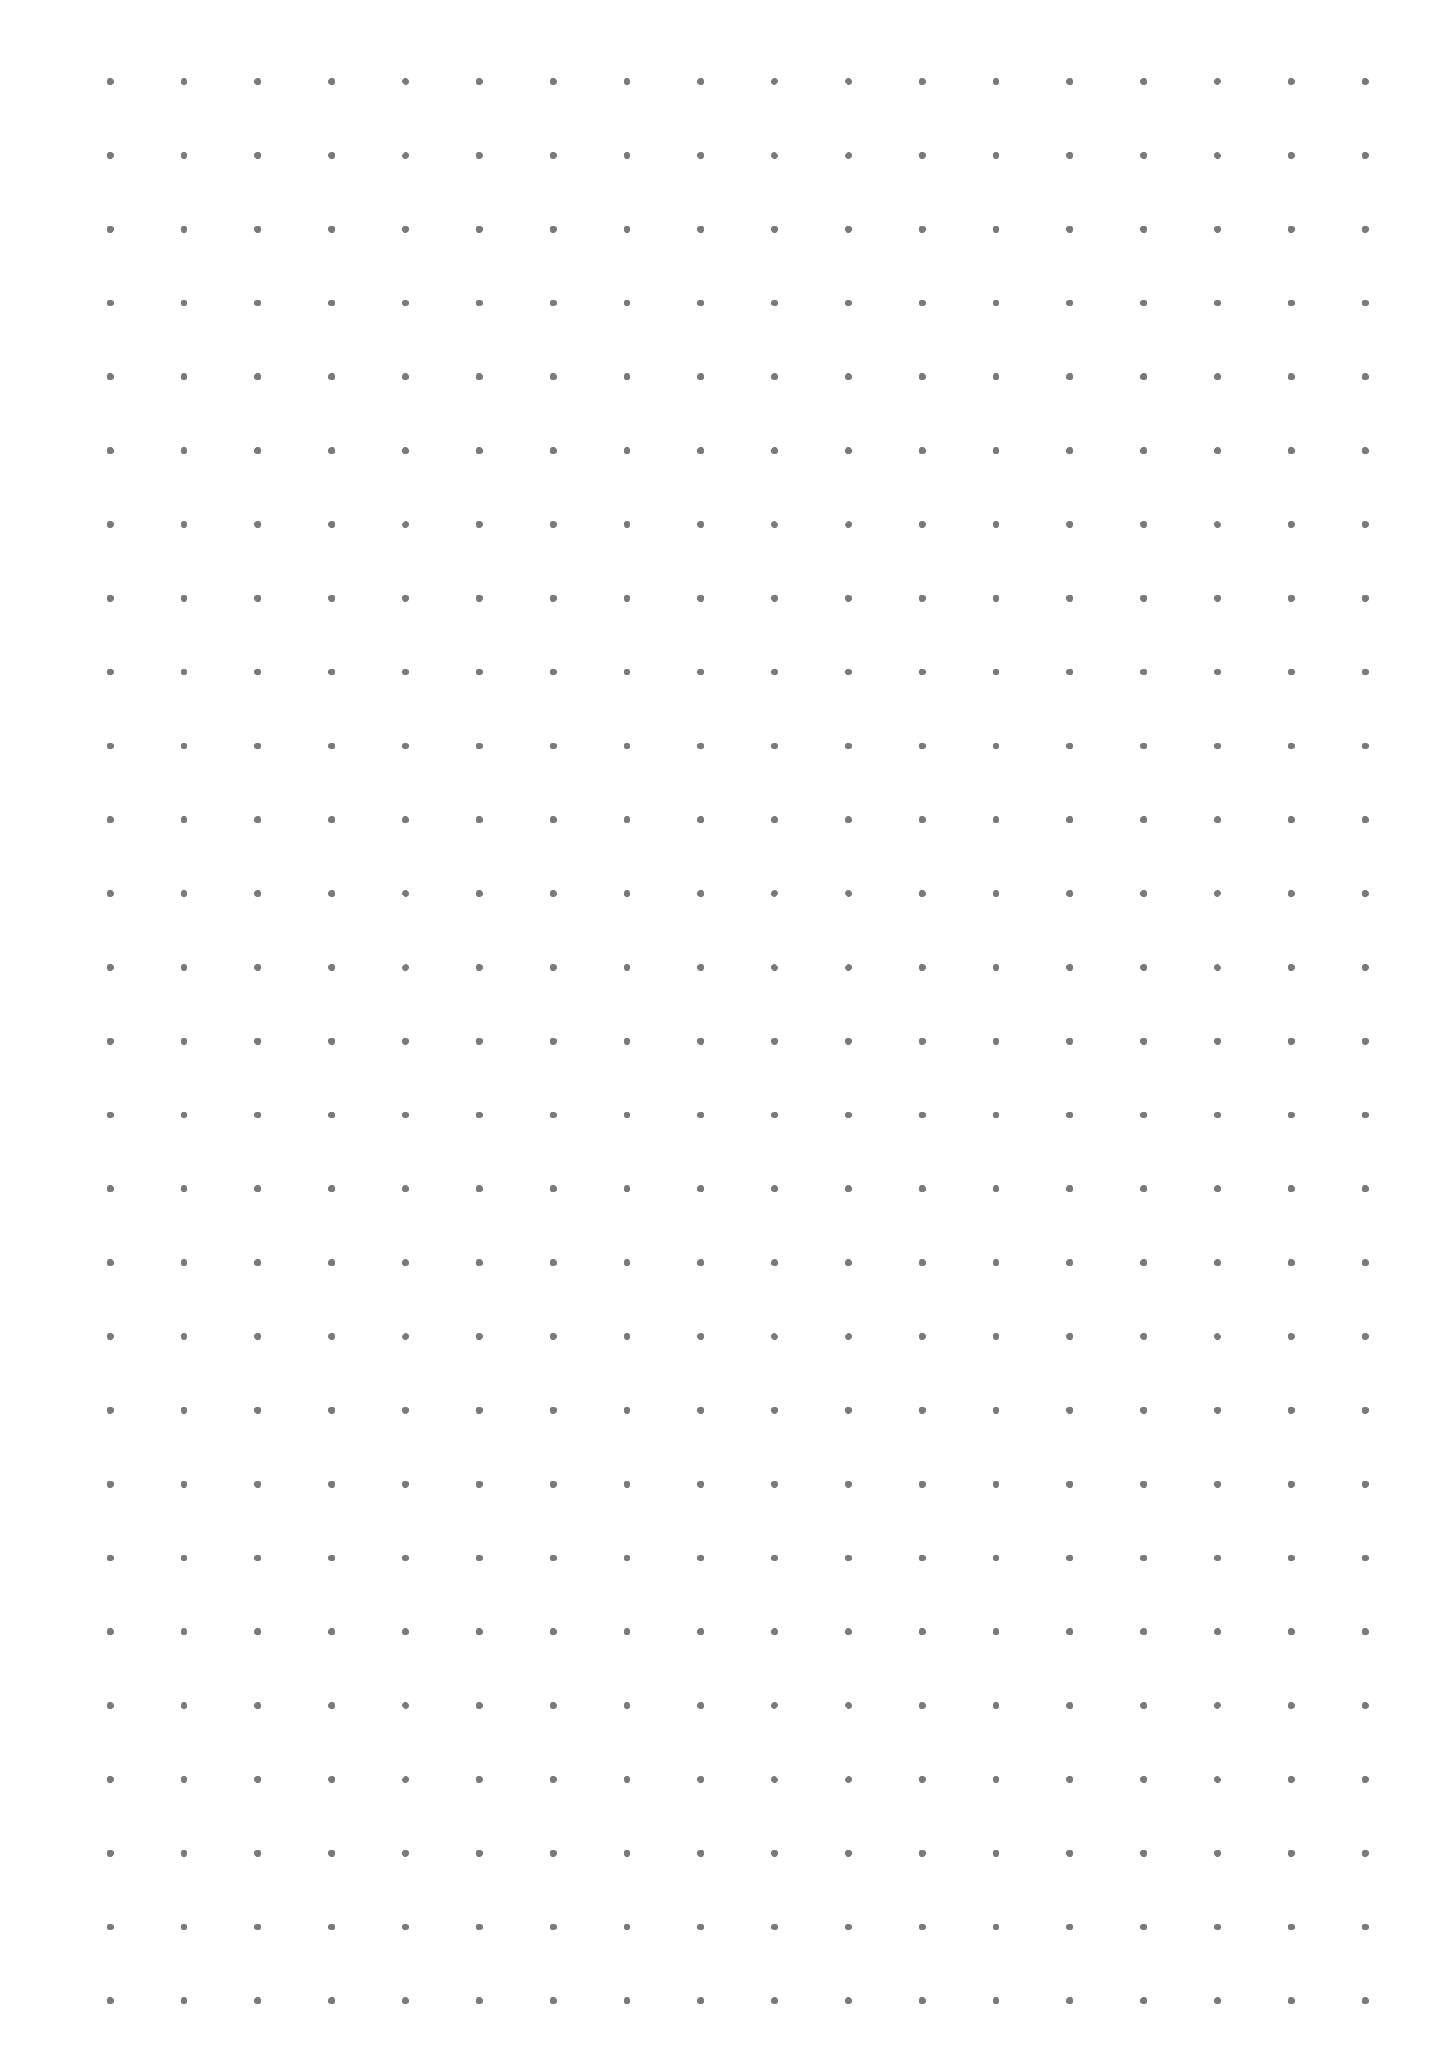 Dot Grid Paper With 7 5 Mm Spacing